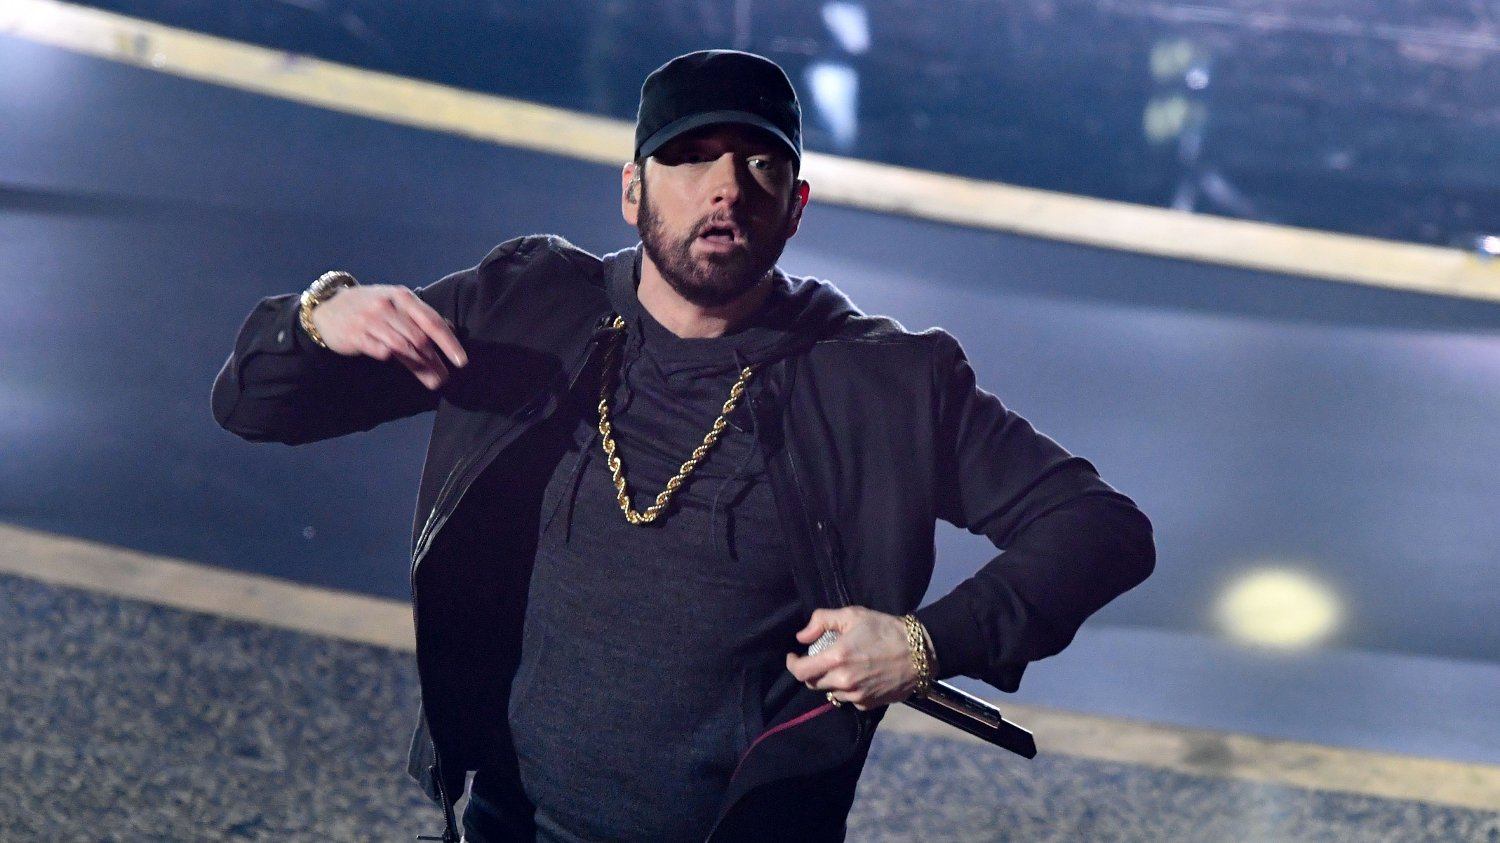 92nd Annual Academy Awards - Show US rapper Eminem performs onstage during the 92nd Oscars at the Dolby Theatre in Hollywood, California on February 9, 2020.